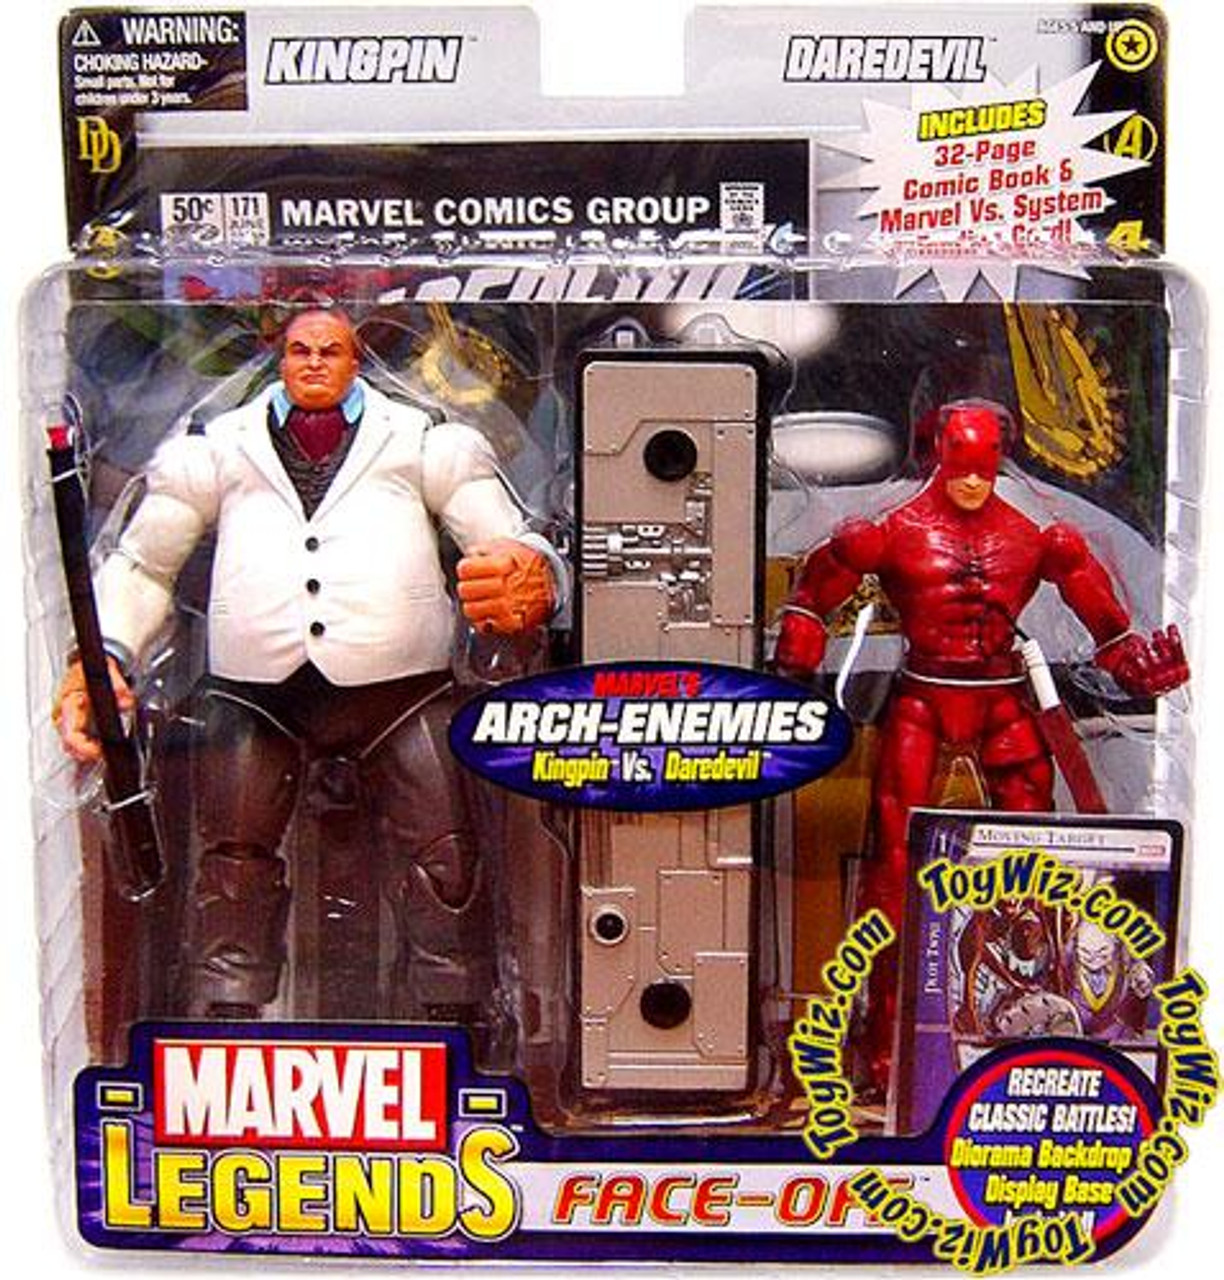 Marvel Legends Face Off Series 1 Kingpin vs. Daredevil Action Figure 2-Pack